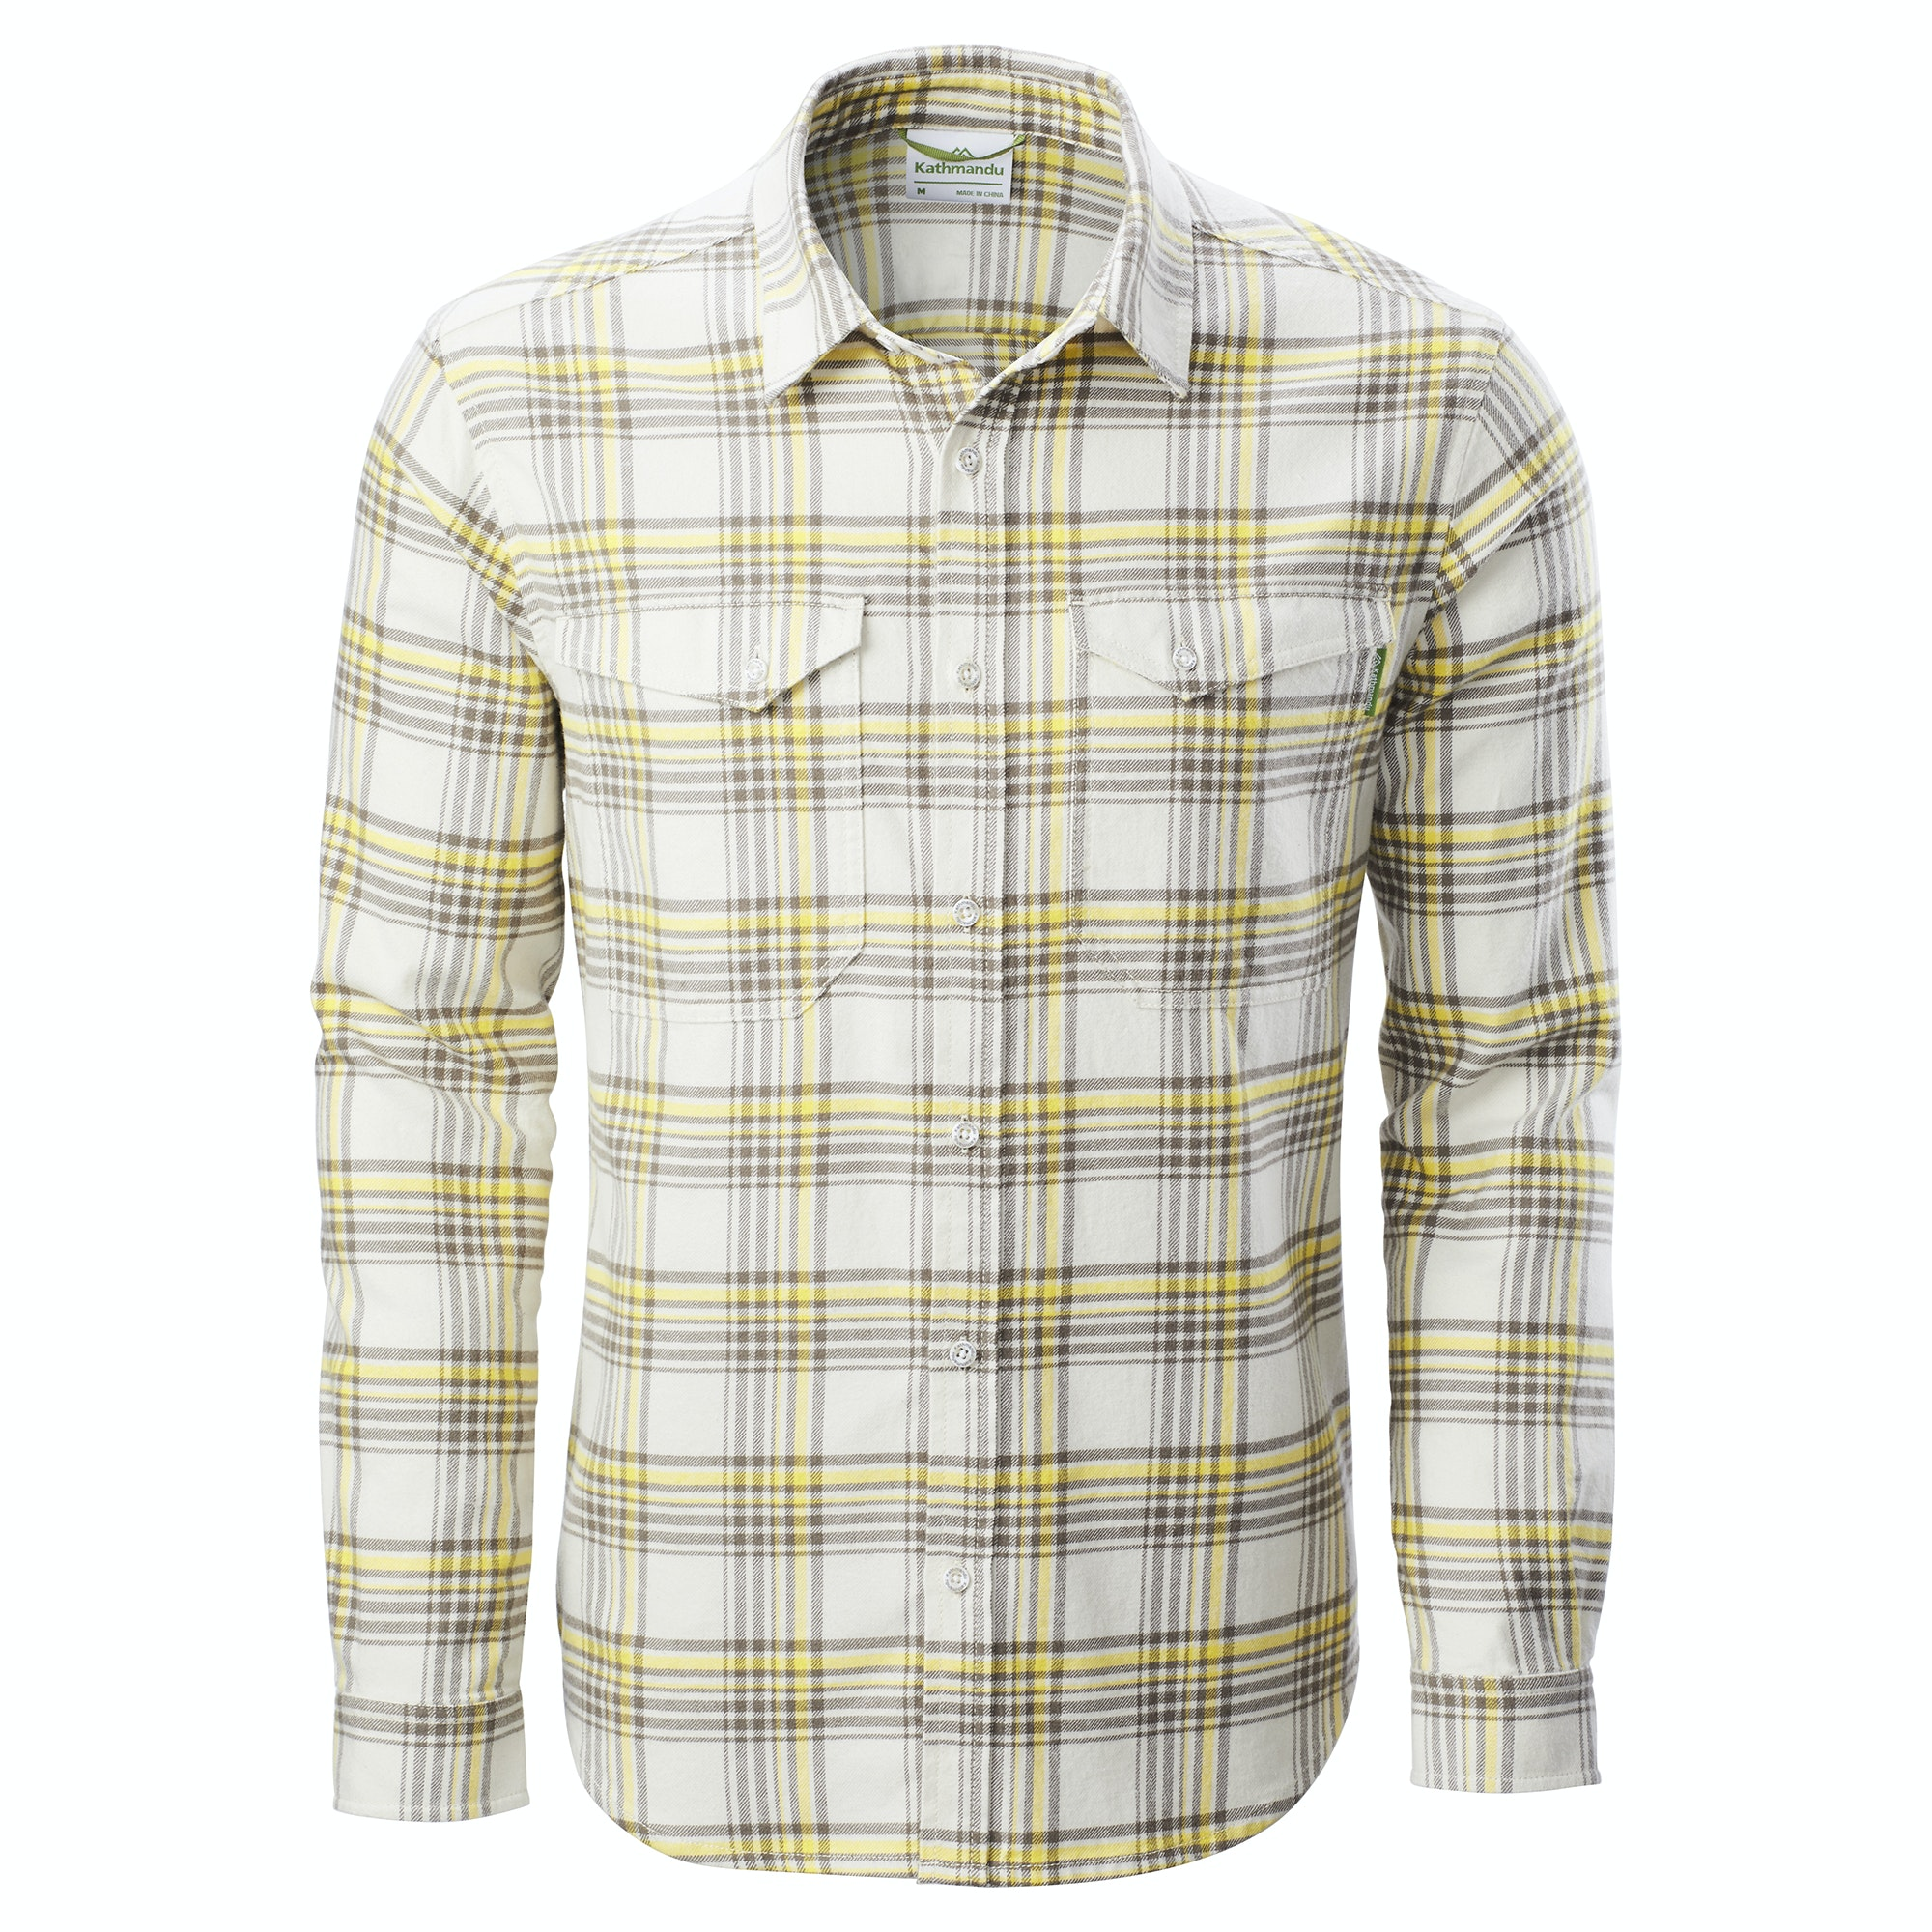 Big W School Shirts Men S Shirts T Shirts Sale Online Tops For Men Kathmandu Nz